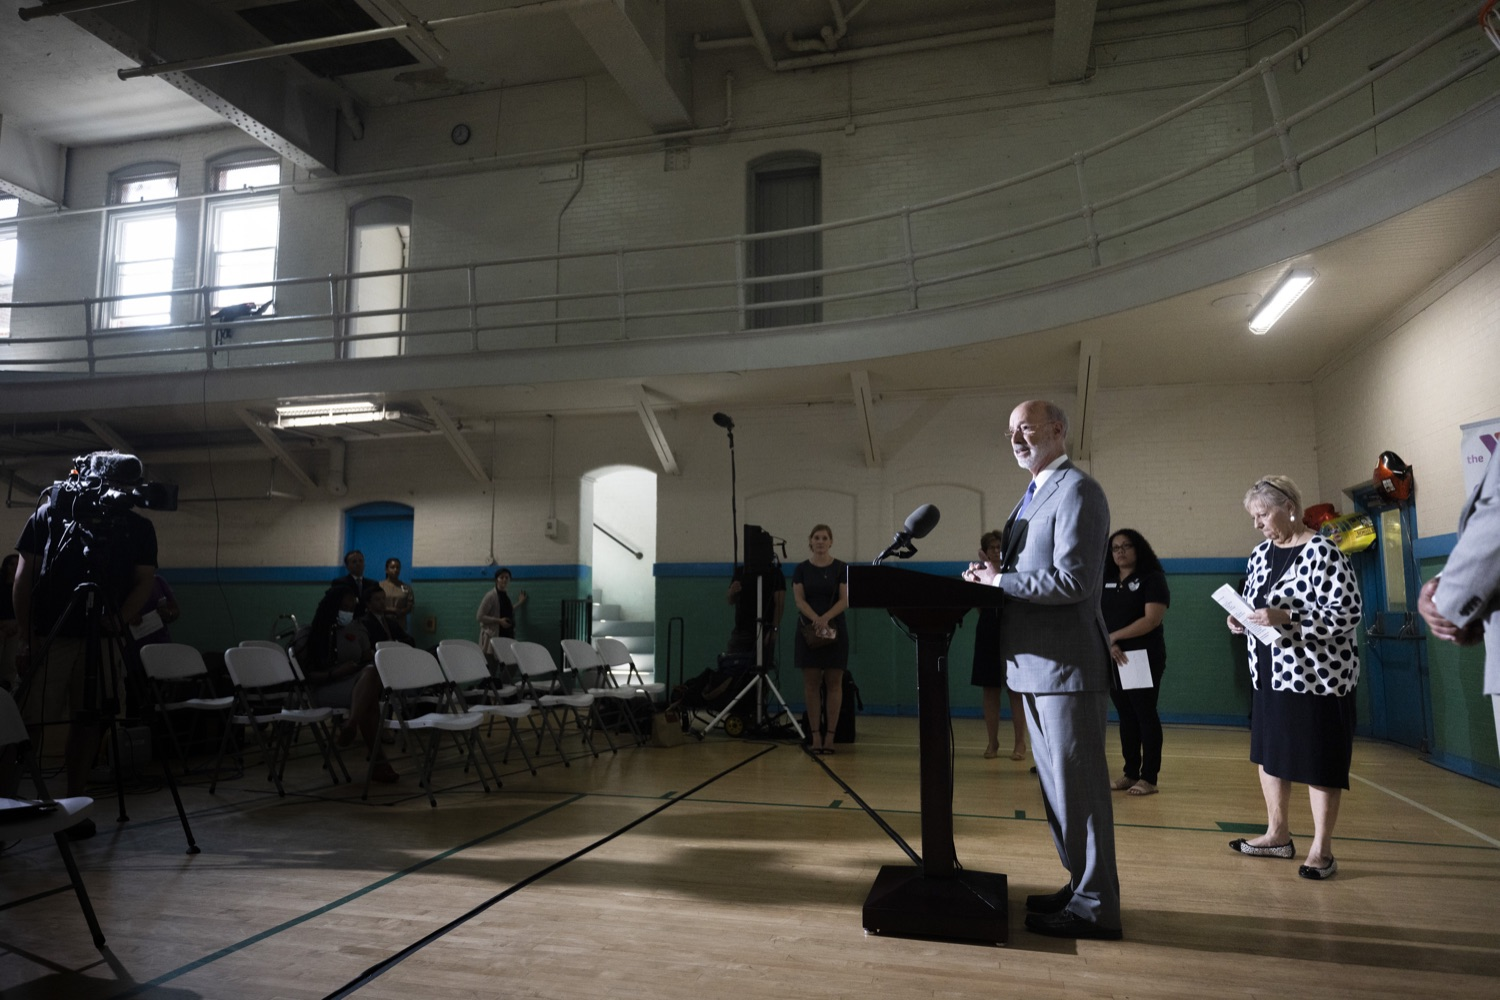 """<a href=""""https://filesource.wostreaming.net/commonwealthofpa/photo/18940_gov_childhooded_dz_002.jpg"""" target=""""_blank"""">⇣Download Photo<br></a>Pennsylvania Governor Tom Wolf speaking with the press.  Governor Tom Wolf today was joined by advocates and legislative members to celebrate the $30 million increase in early childhood education funding in the state budget at the YMCA in Reading. This new funding will allow an additional 3,270 children to enroll in the states high-quality early learning programs.  Reading, PA - July 19, 2021"""